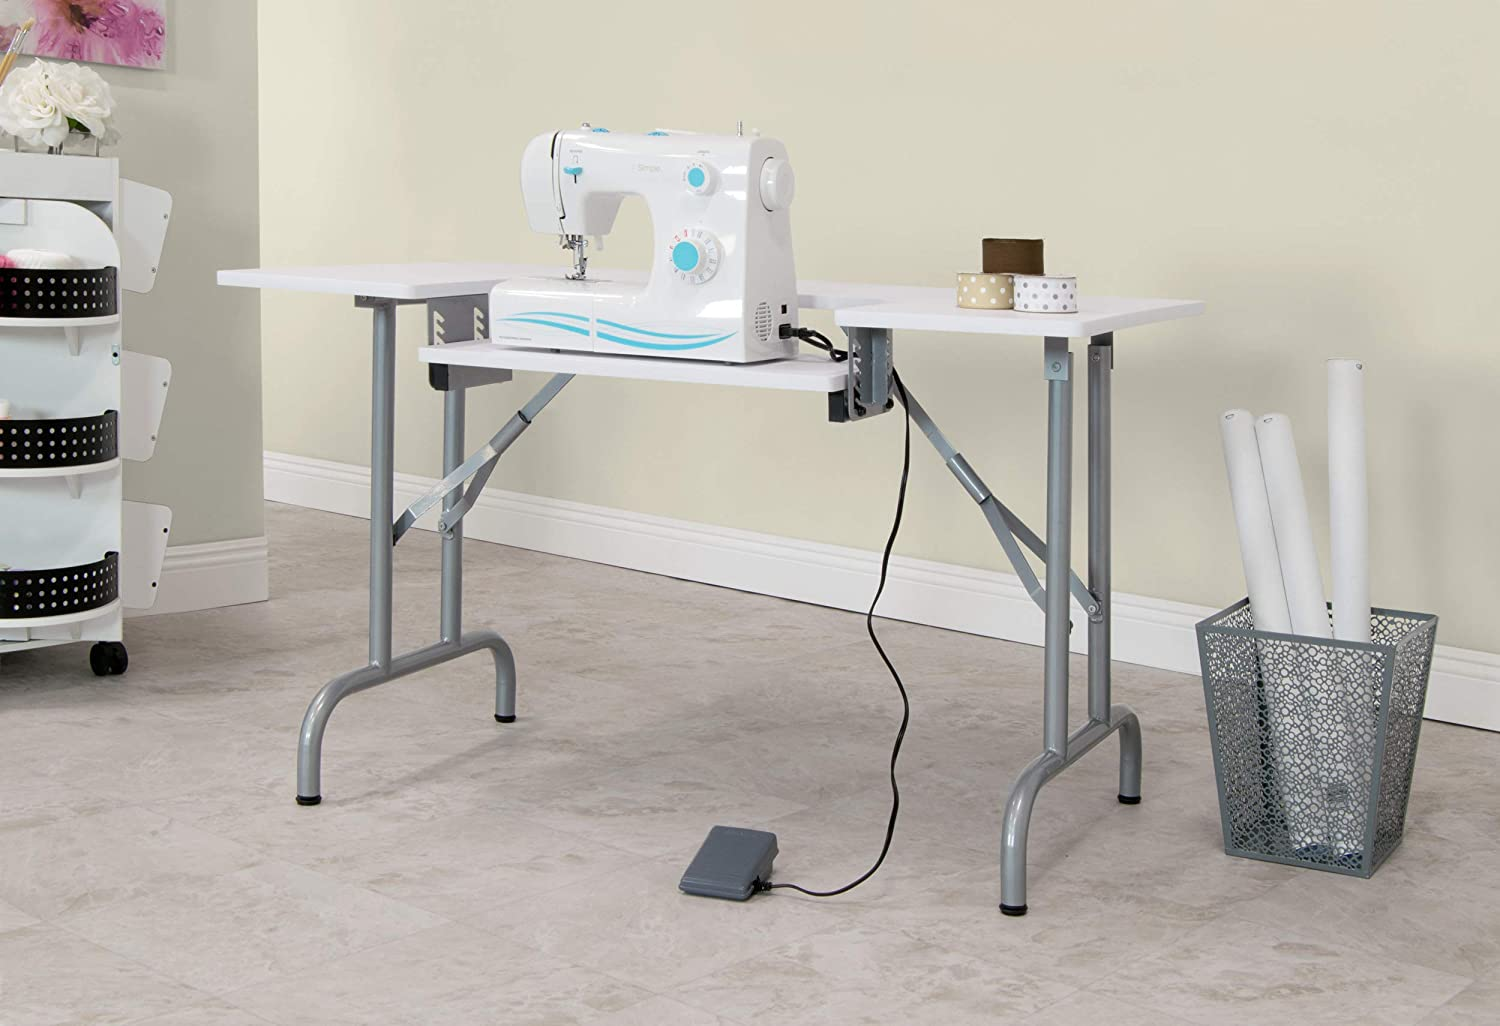 Studio Designs 13373.0 Sew Ready Folding Multipurpose/Sewing Table